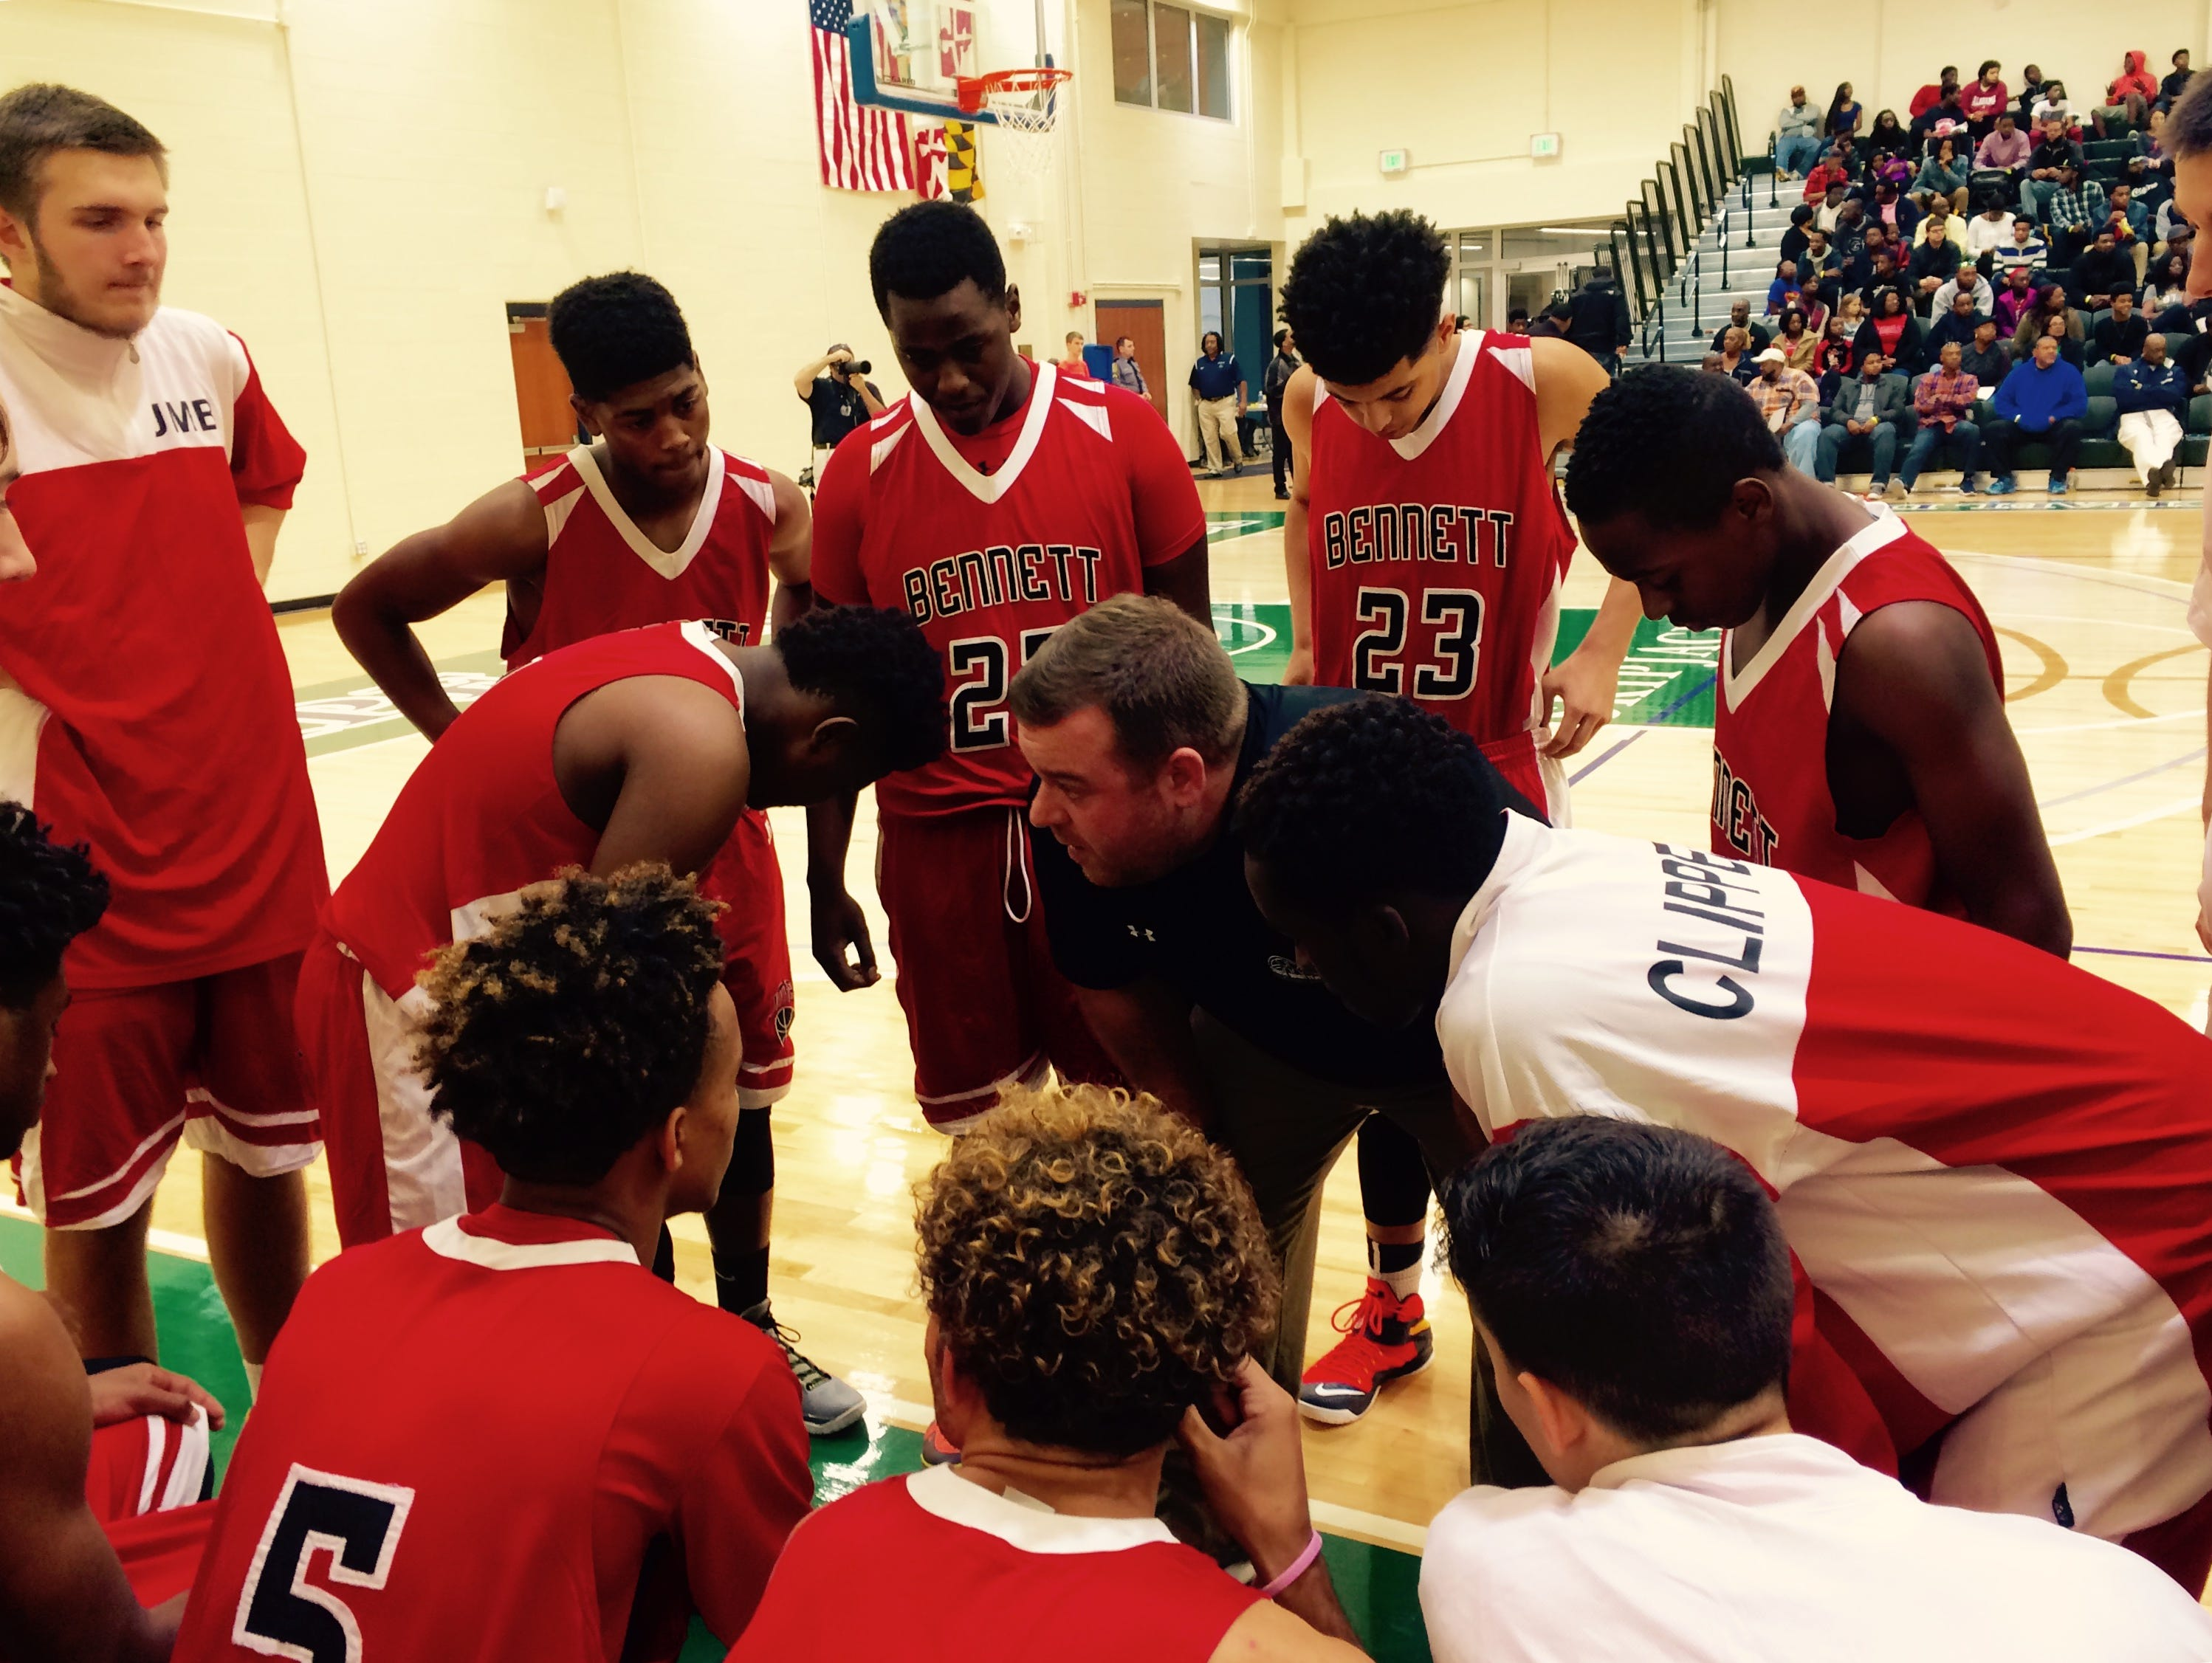 Clippers' head coach Dustin Mills readying his team for battle.